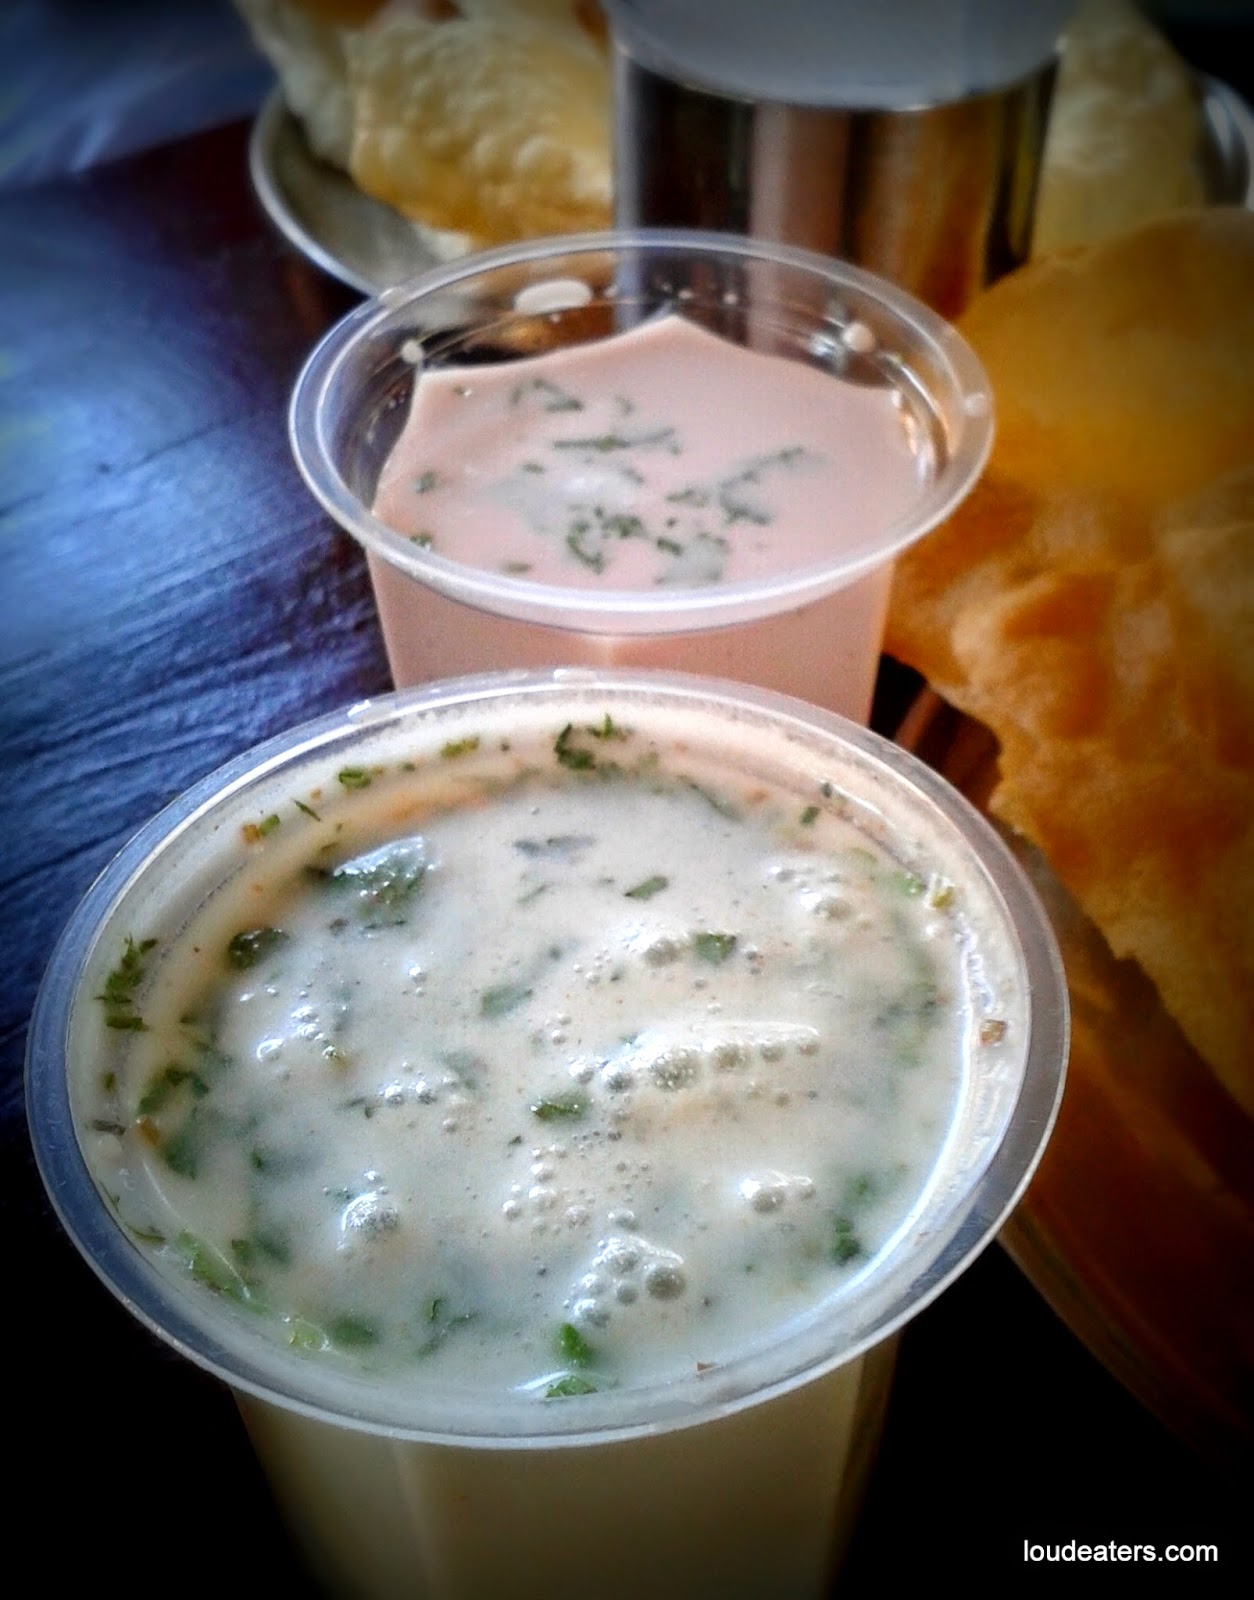 Sol kadi and buttermilk are the perfect accompaniments to Misal